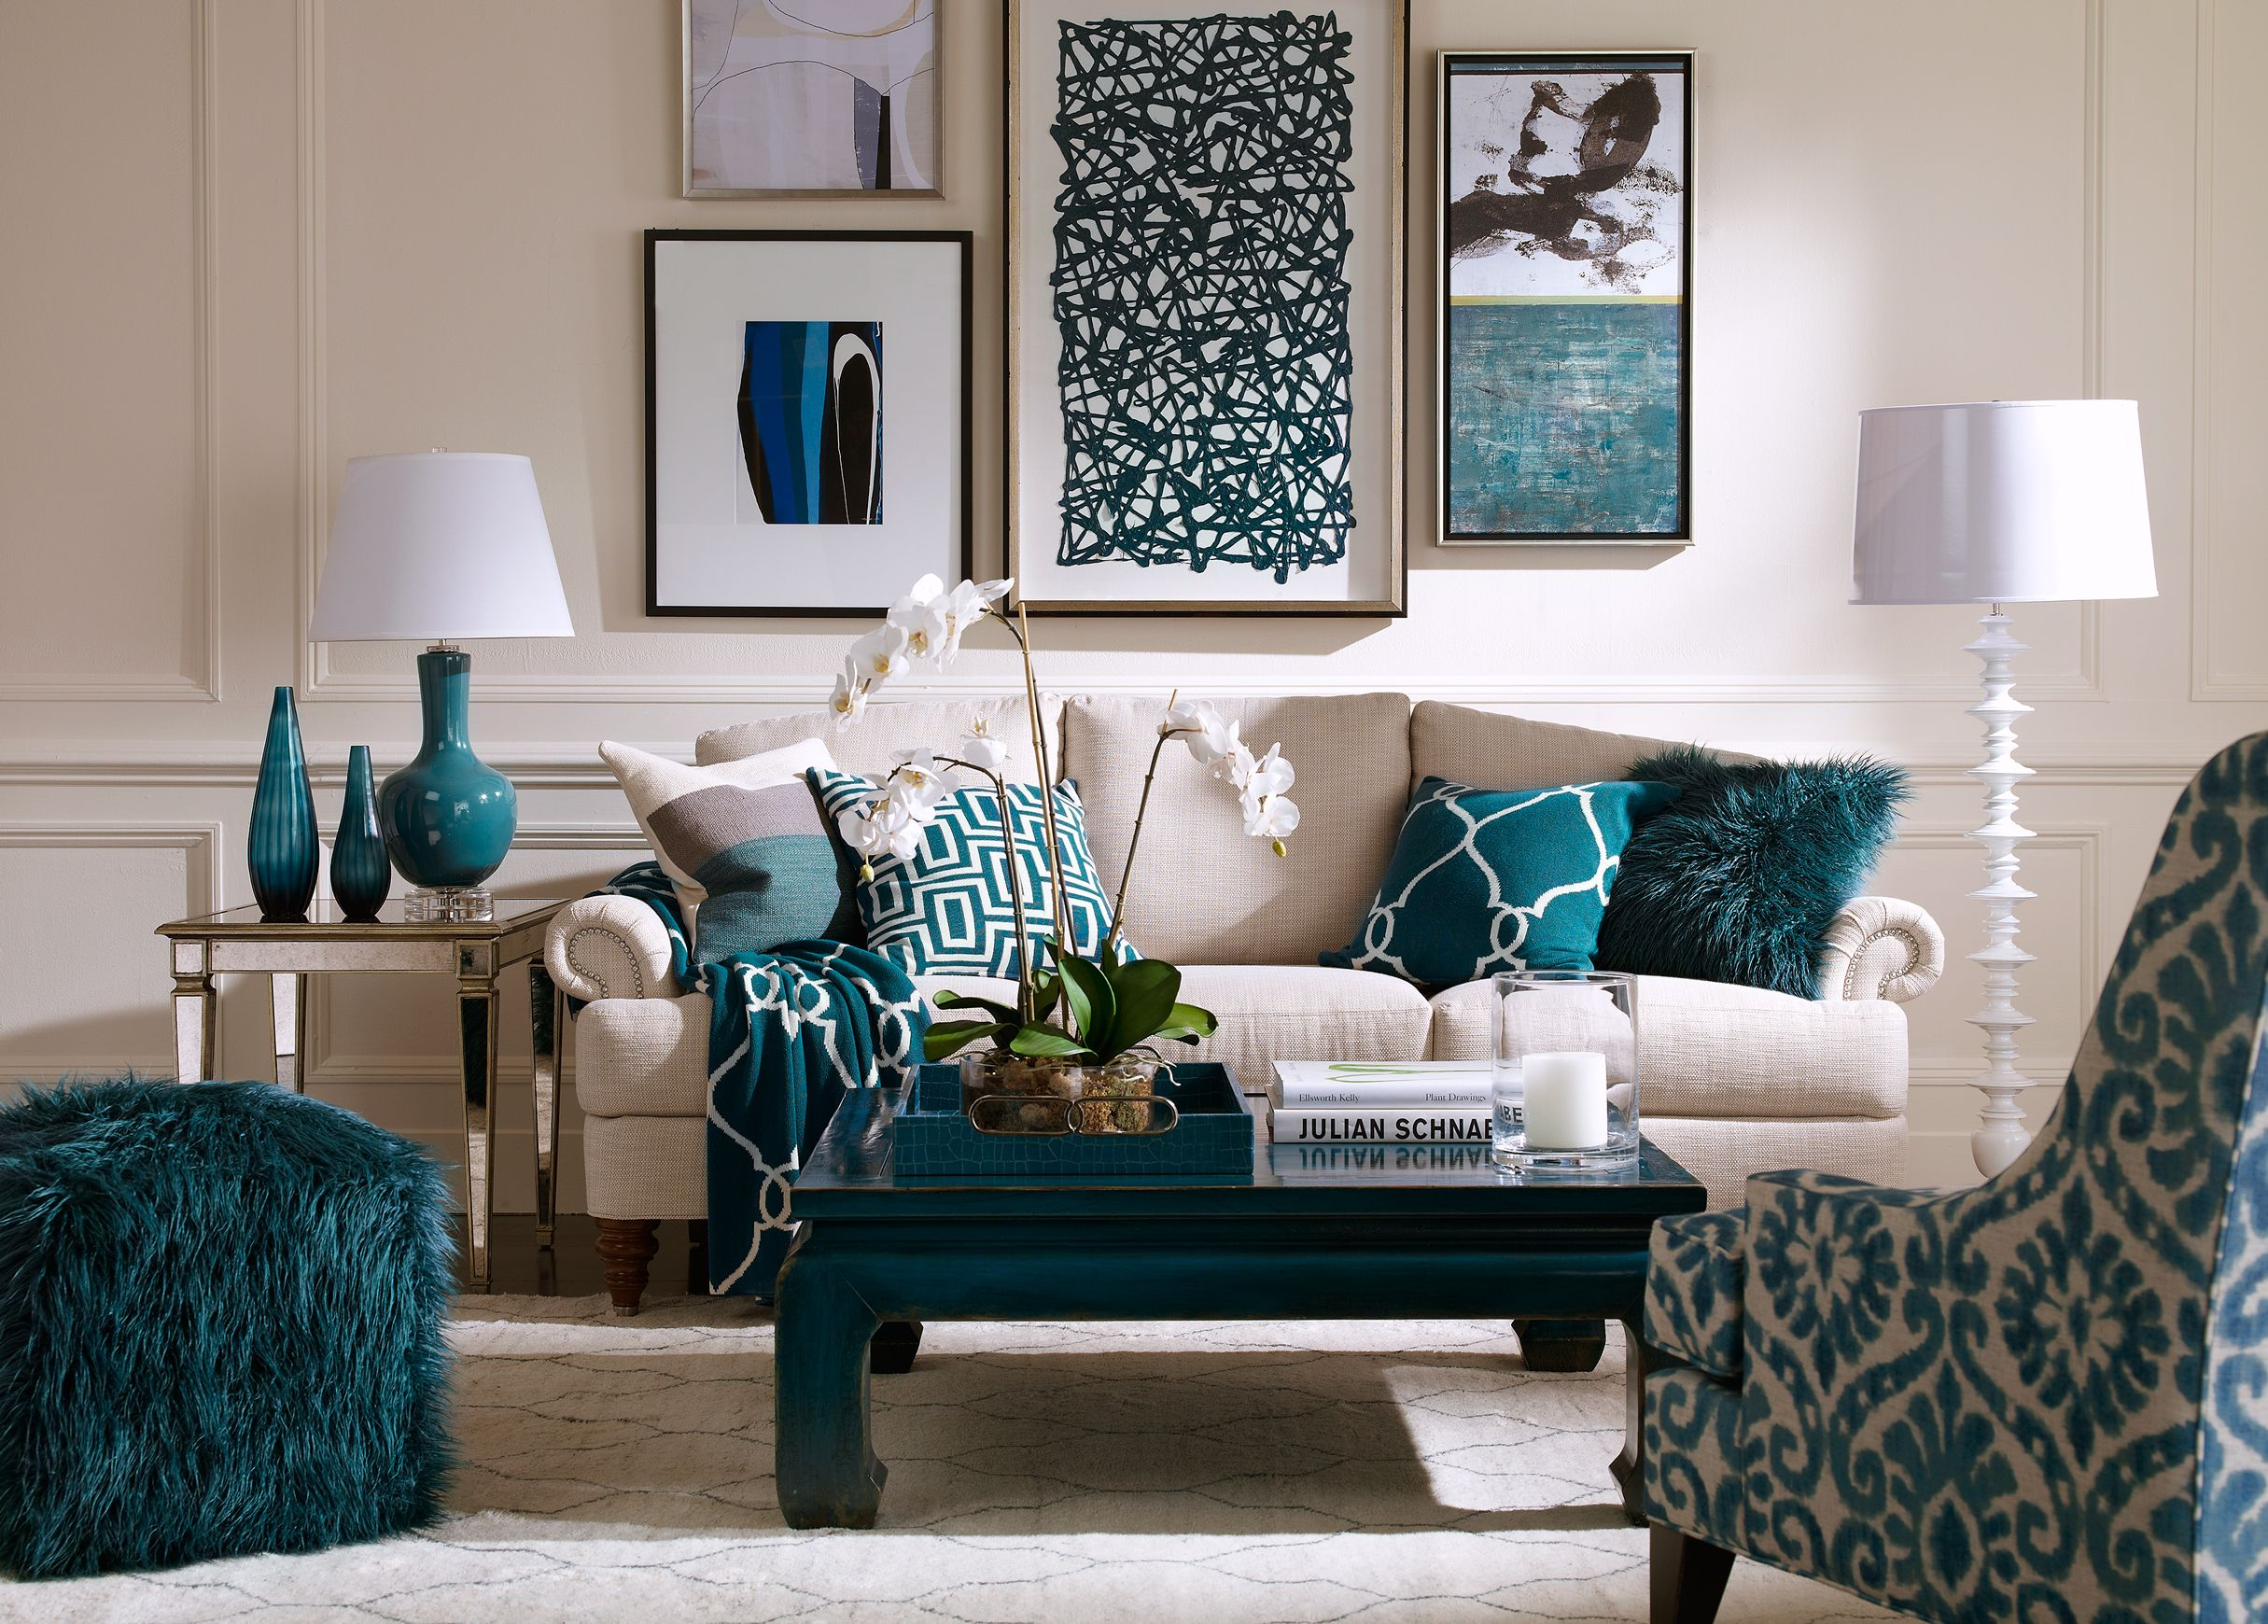 Turquoise dining room ideas rooms living accessories using in decorating with accents also best images about decorations rh pinterest